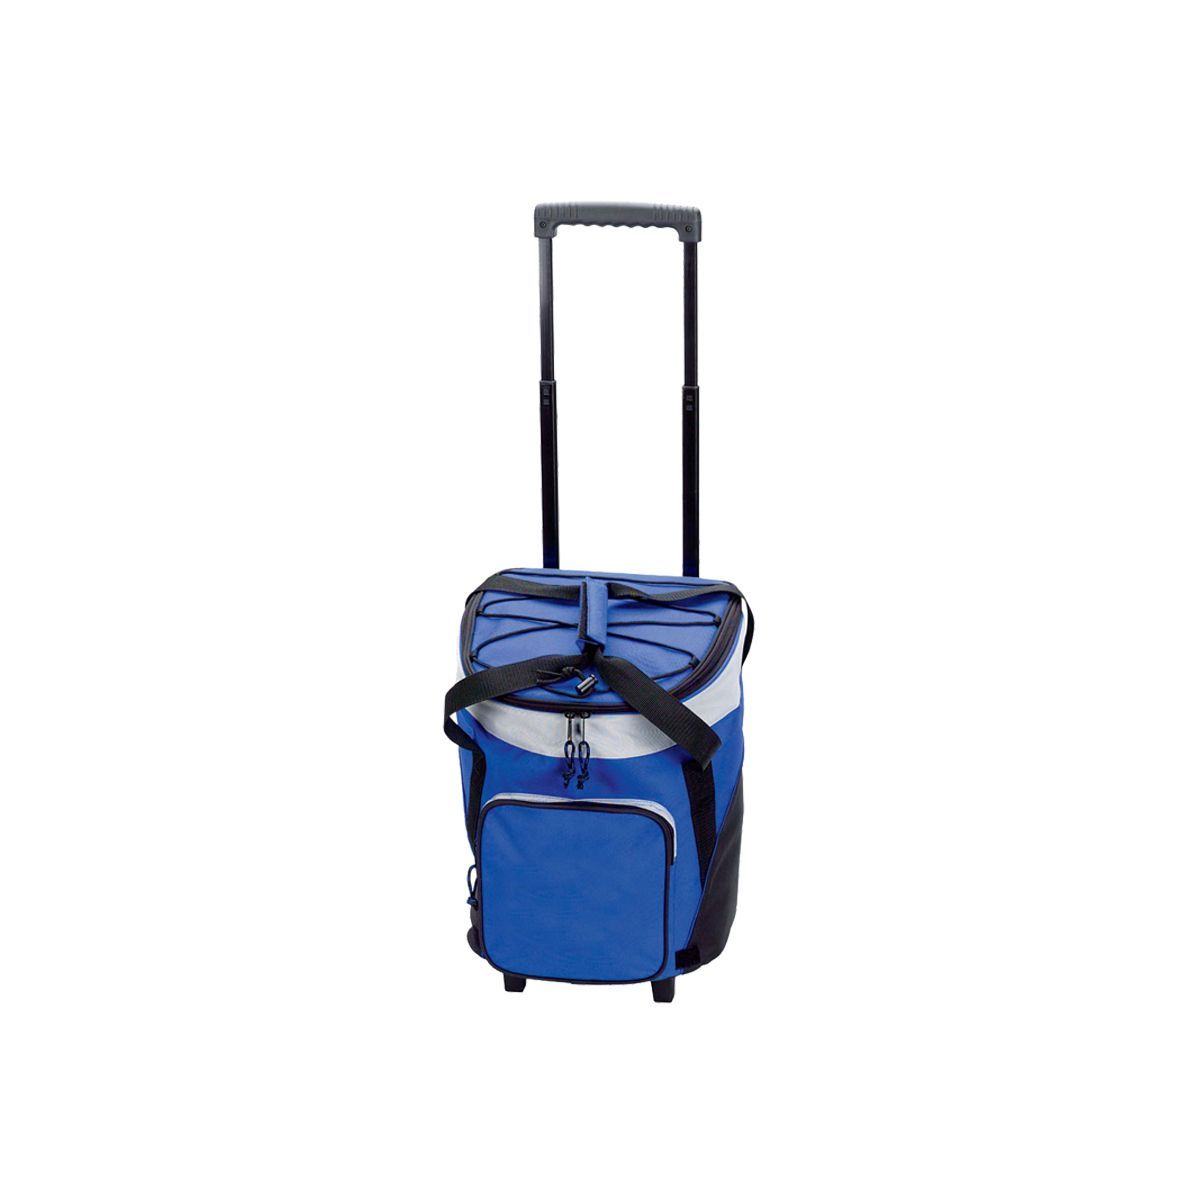 Goodhope Rolling Insulated Cooler Tote Bag | Products | Pinterest ...